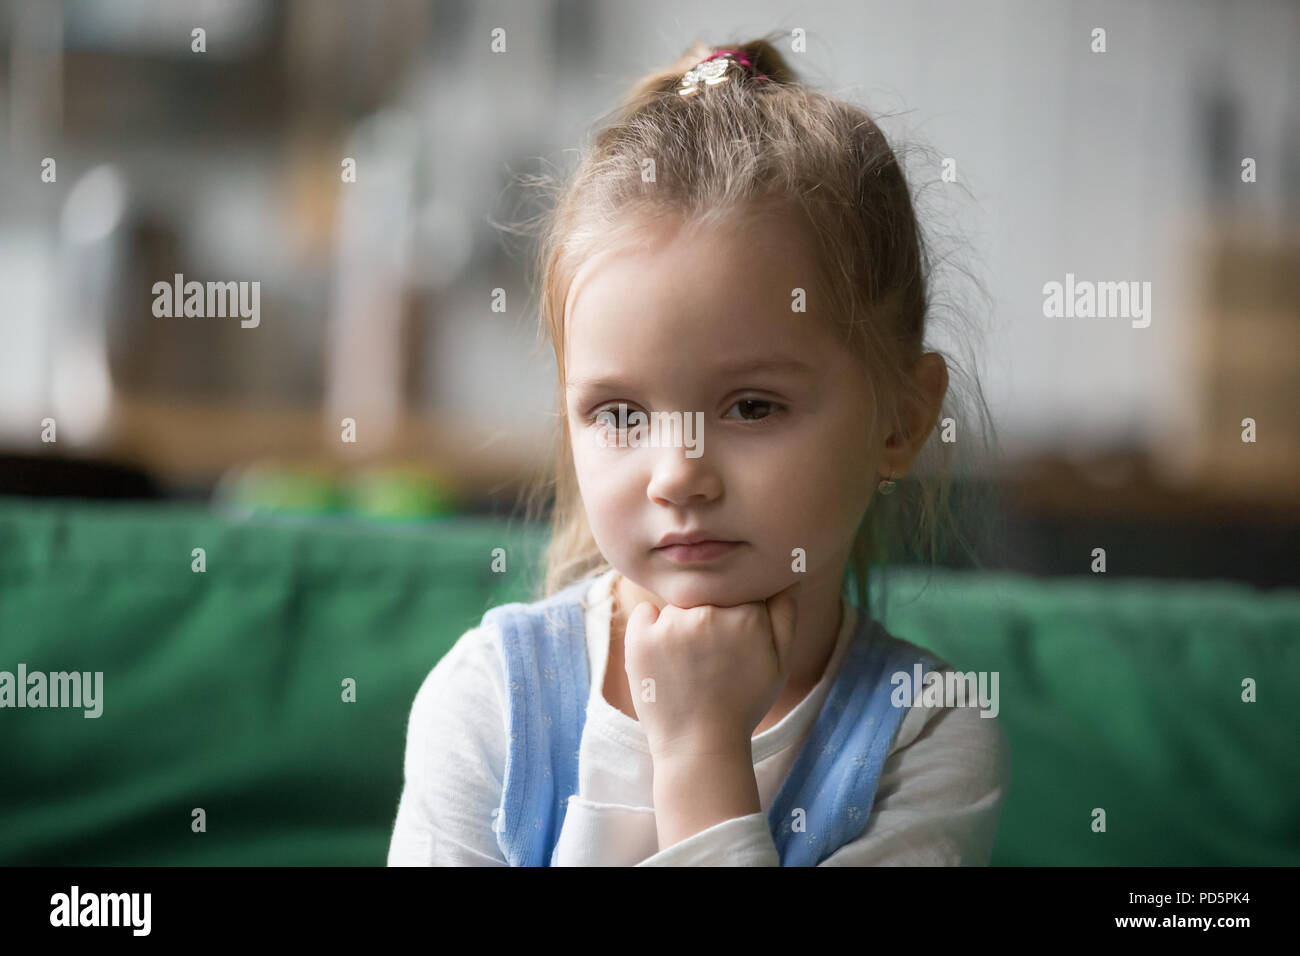 Serious pensive kid girl looking away lost in thoughts concept - Stock Image